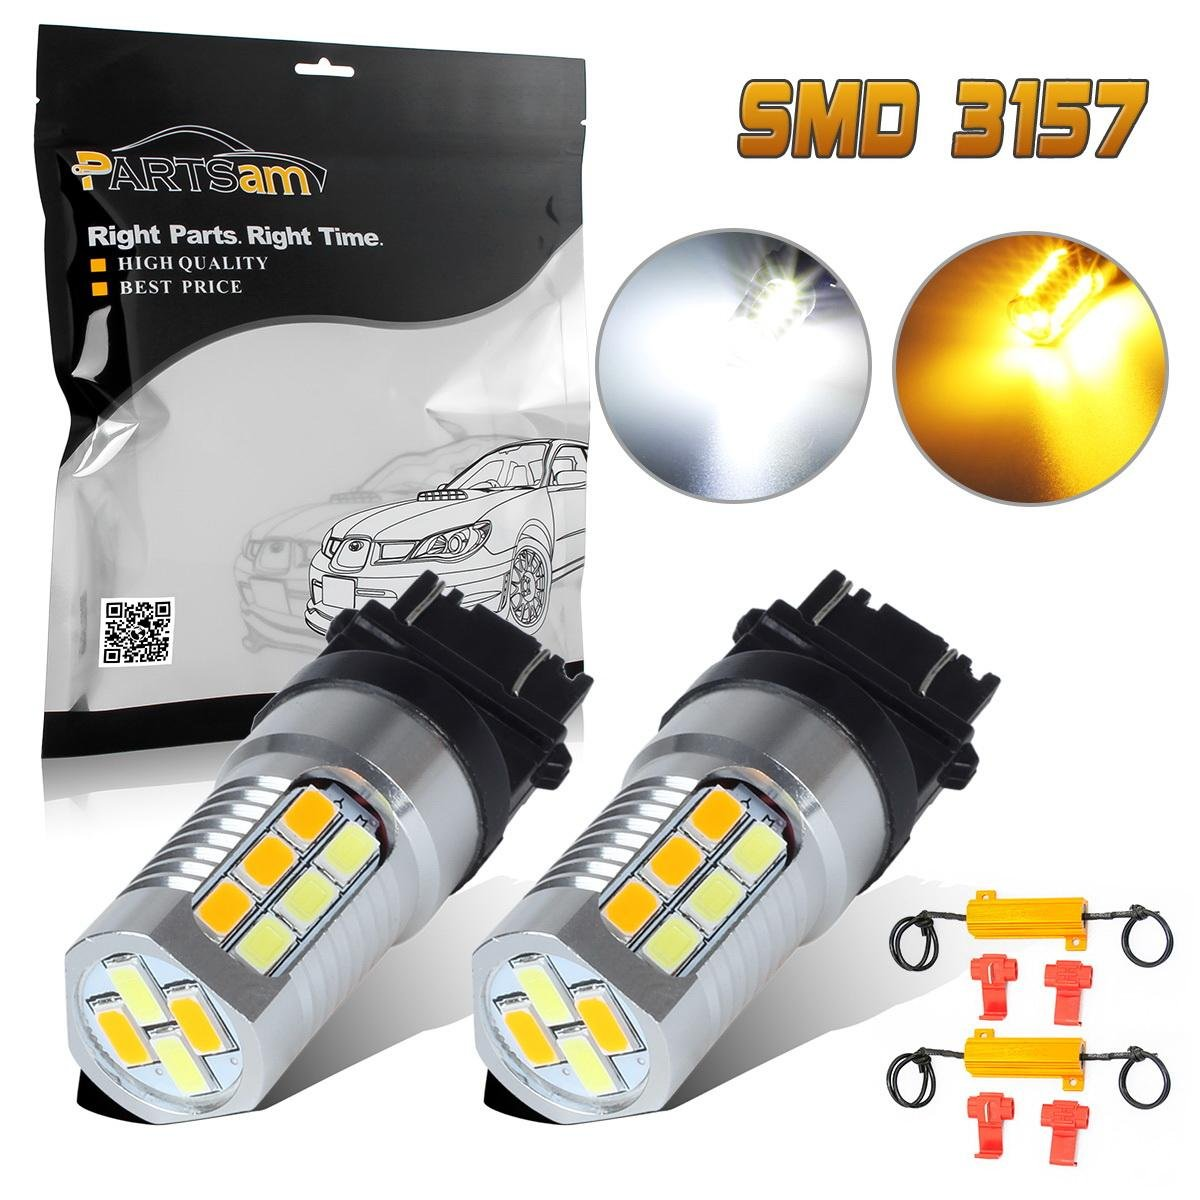 Partsam 2pcs 4157 3157 3156 3456 Switchback Dual Color Lights For 2001 Dodge Durango Trailer Wiring Diagram Code High Power Led Front Turn Signal Light Load Resistor Amber Yellow White Bulbs